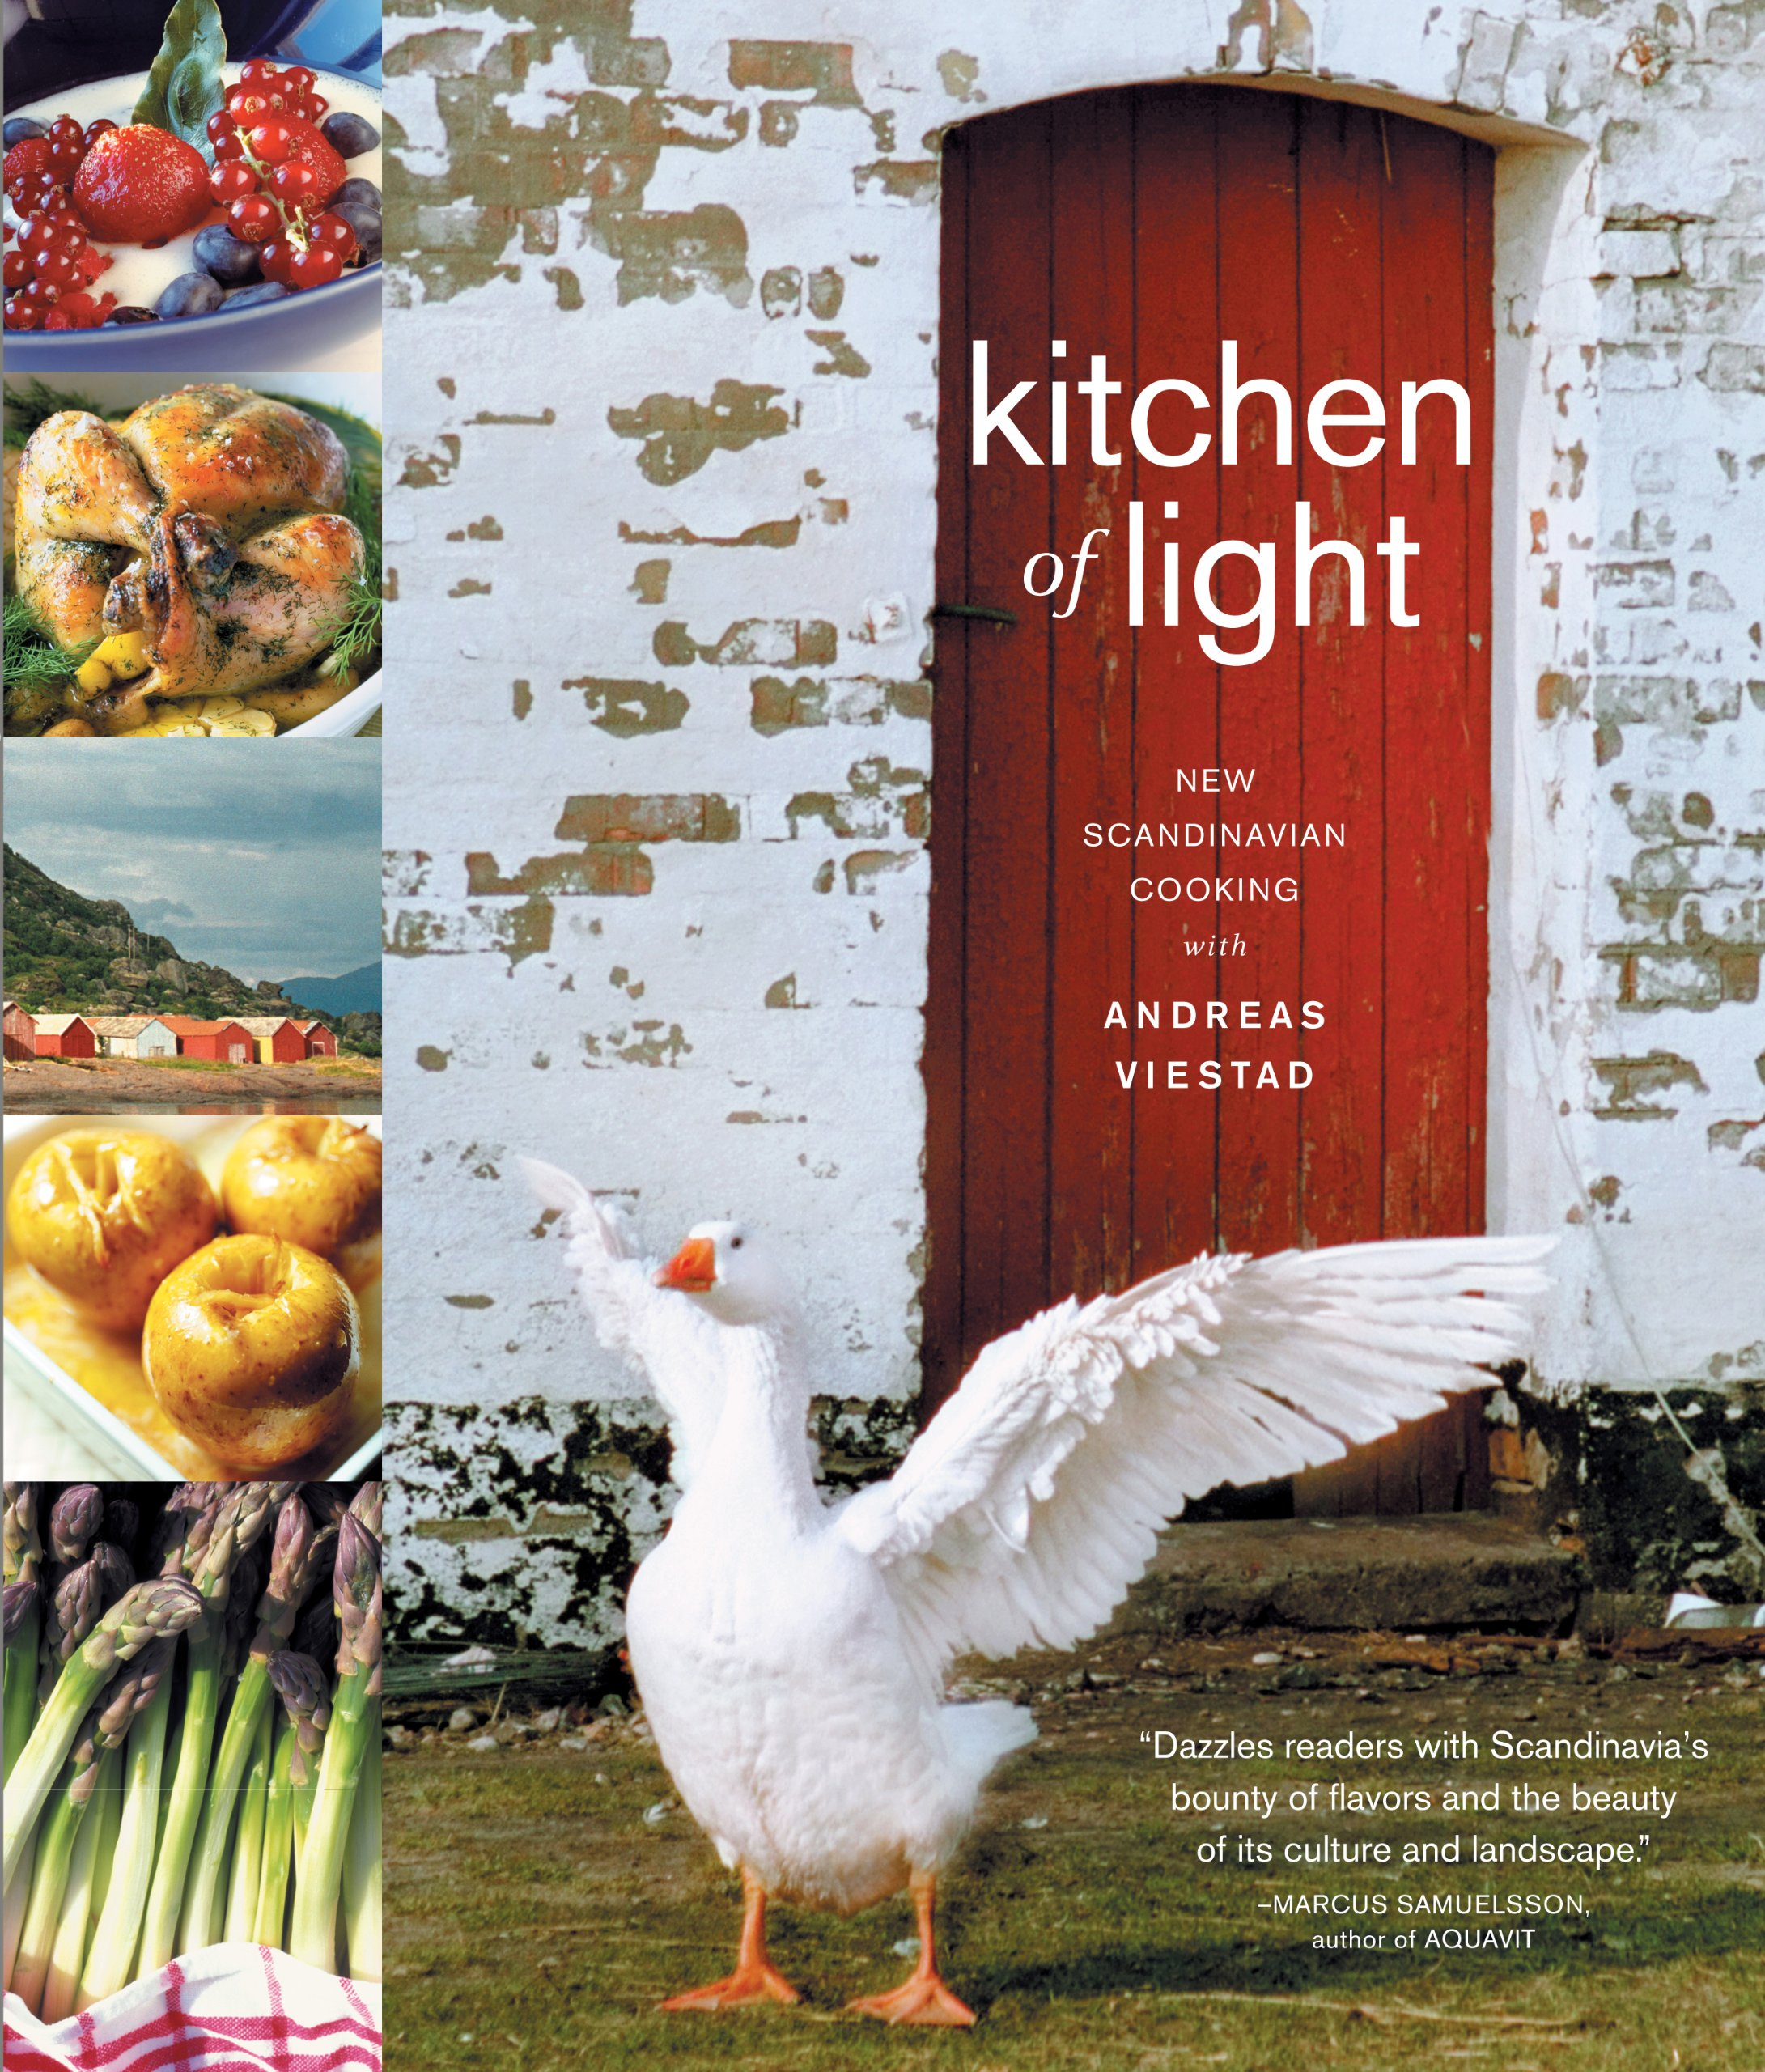 Kitchen of light the new scandinavian cooking andreas viestad kitchen of light the new scandinavian cooking andreas viestad mette randem 0791243653404 amazon books workwithnaturefo